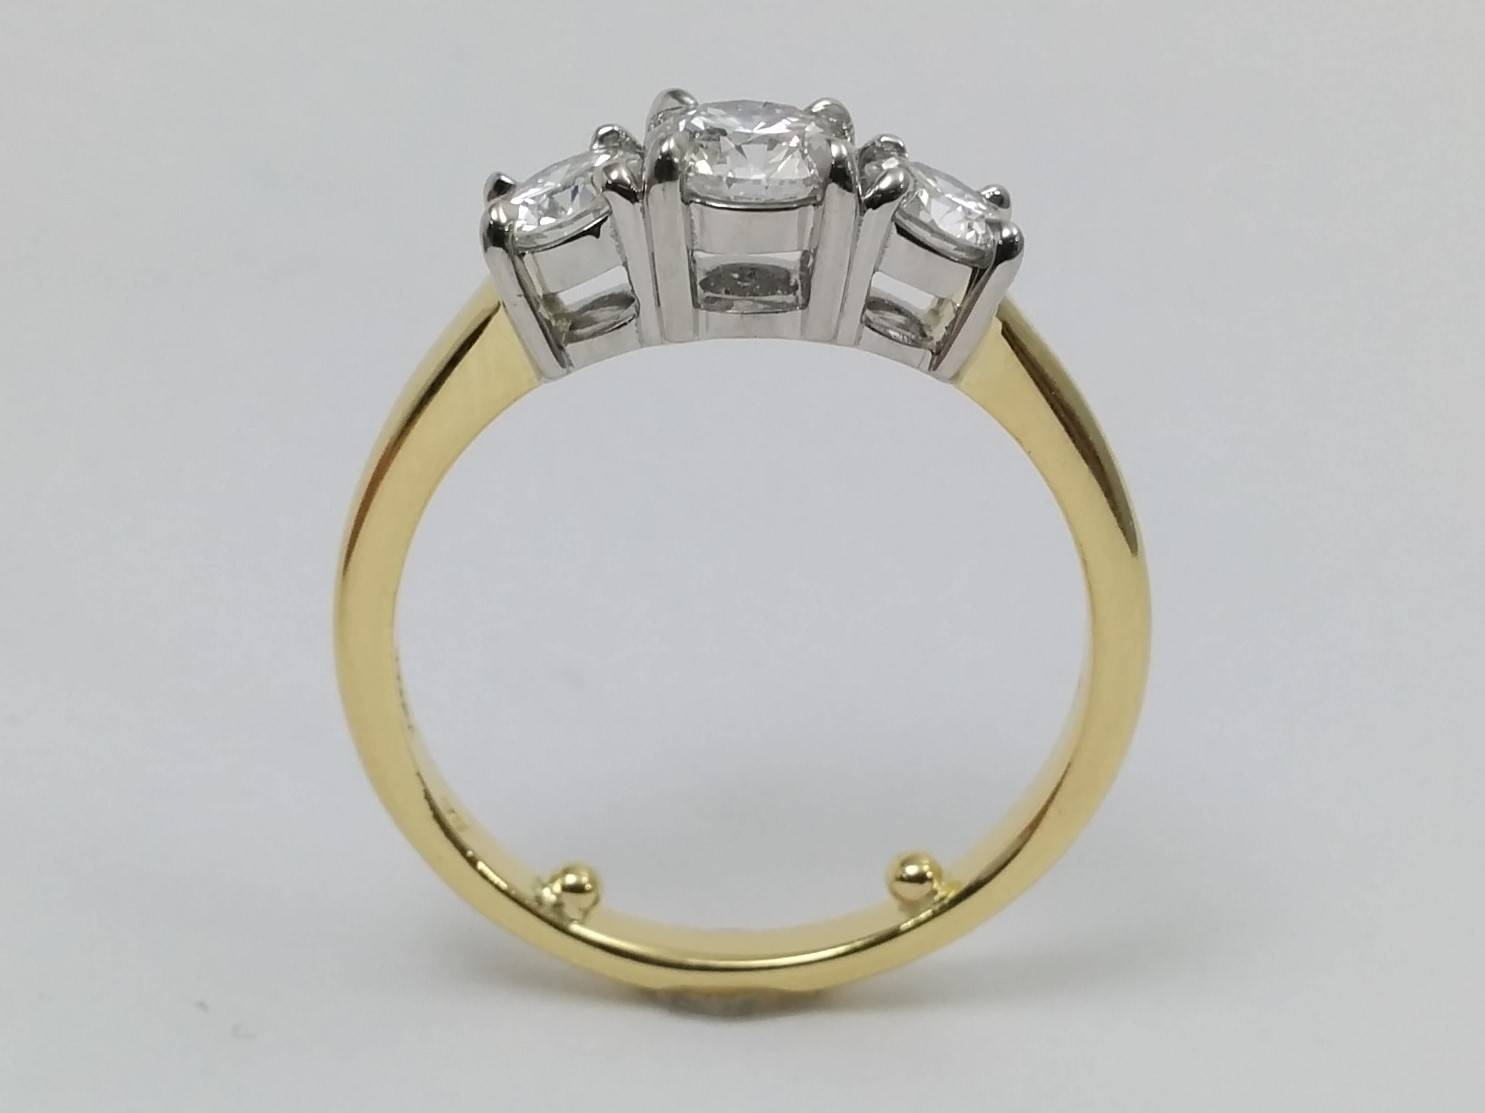 Engagement Ring  Three Stone Diamond Two Tone Anniversary Ring Es1448 With Regard To Most Current Two Tone Anniversary Rings (View 11 of 25)